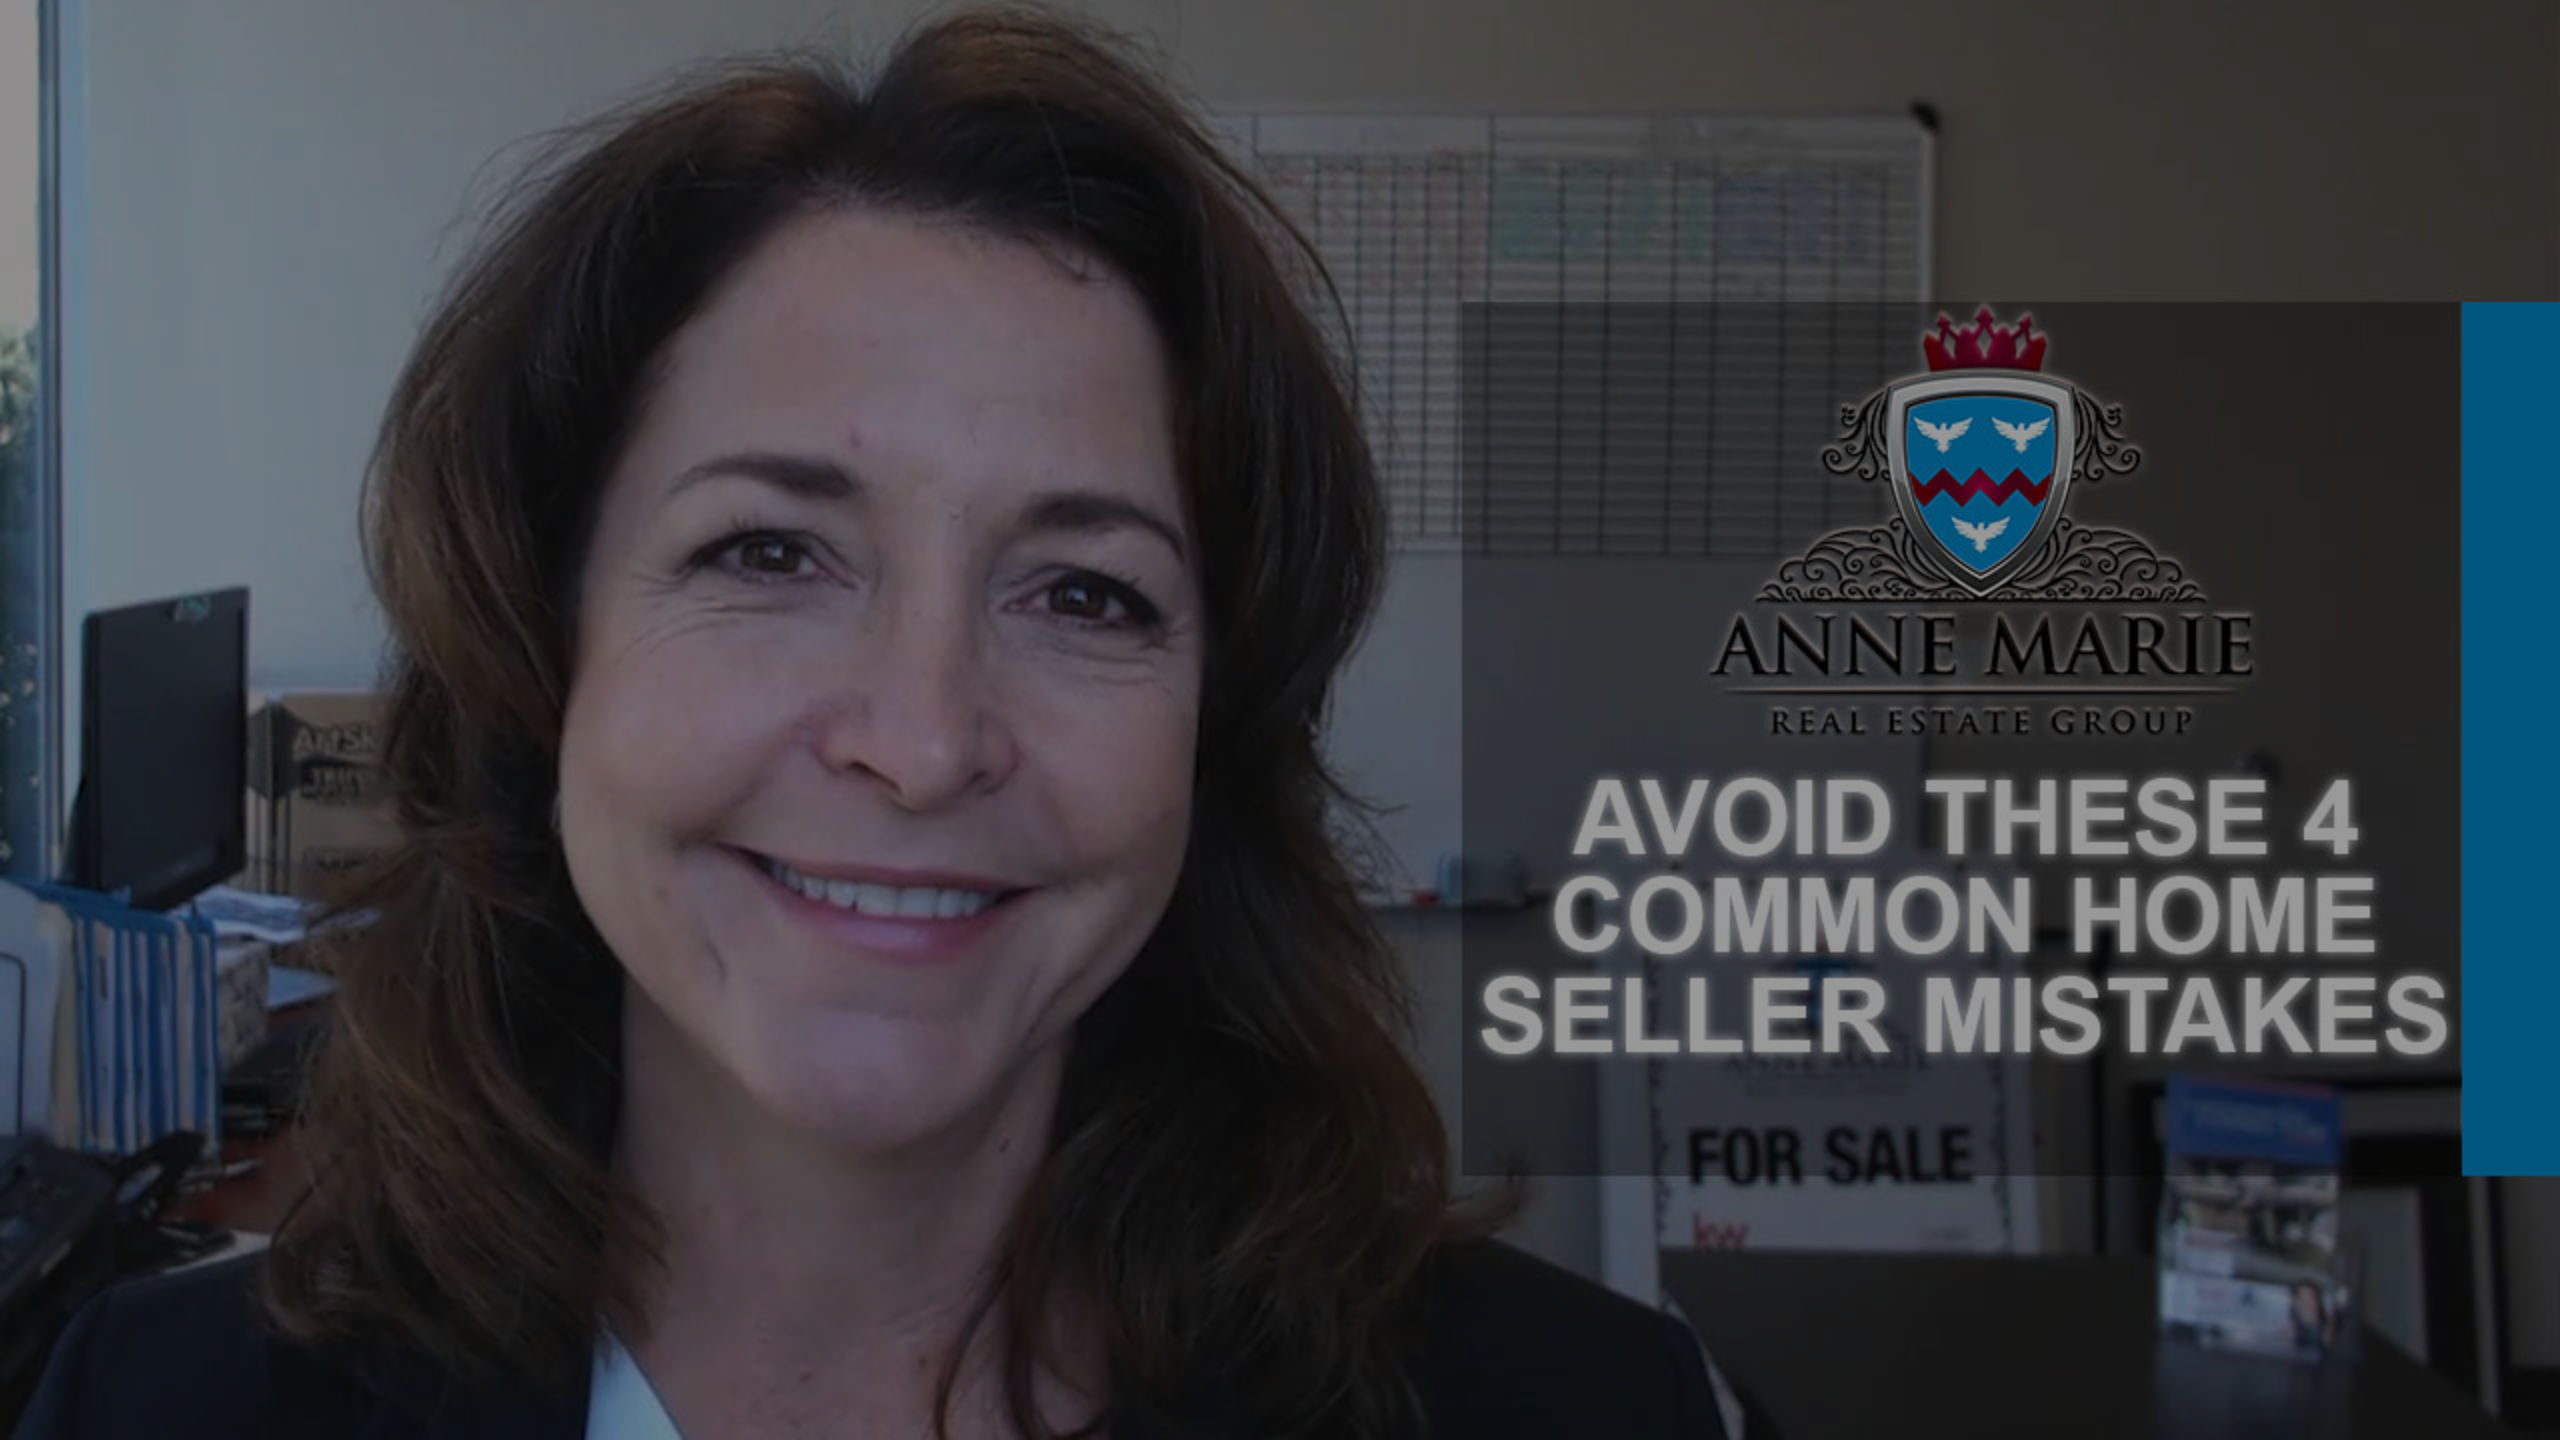 4 Common Home Seller Mistakes